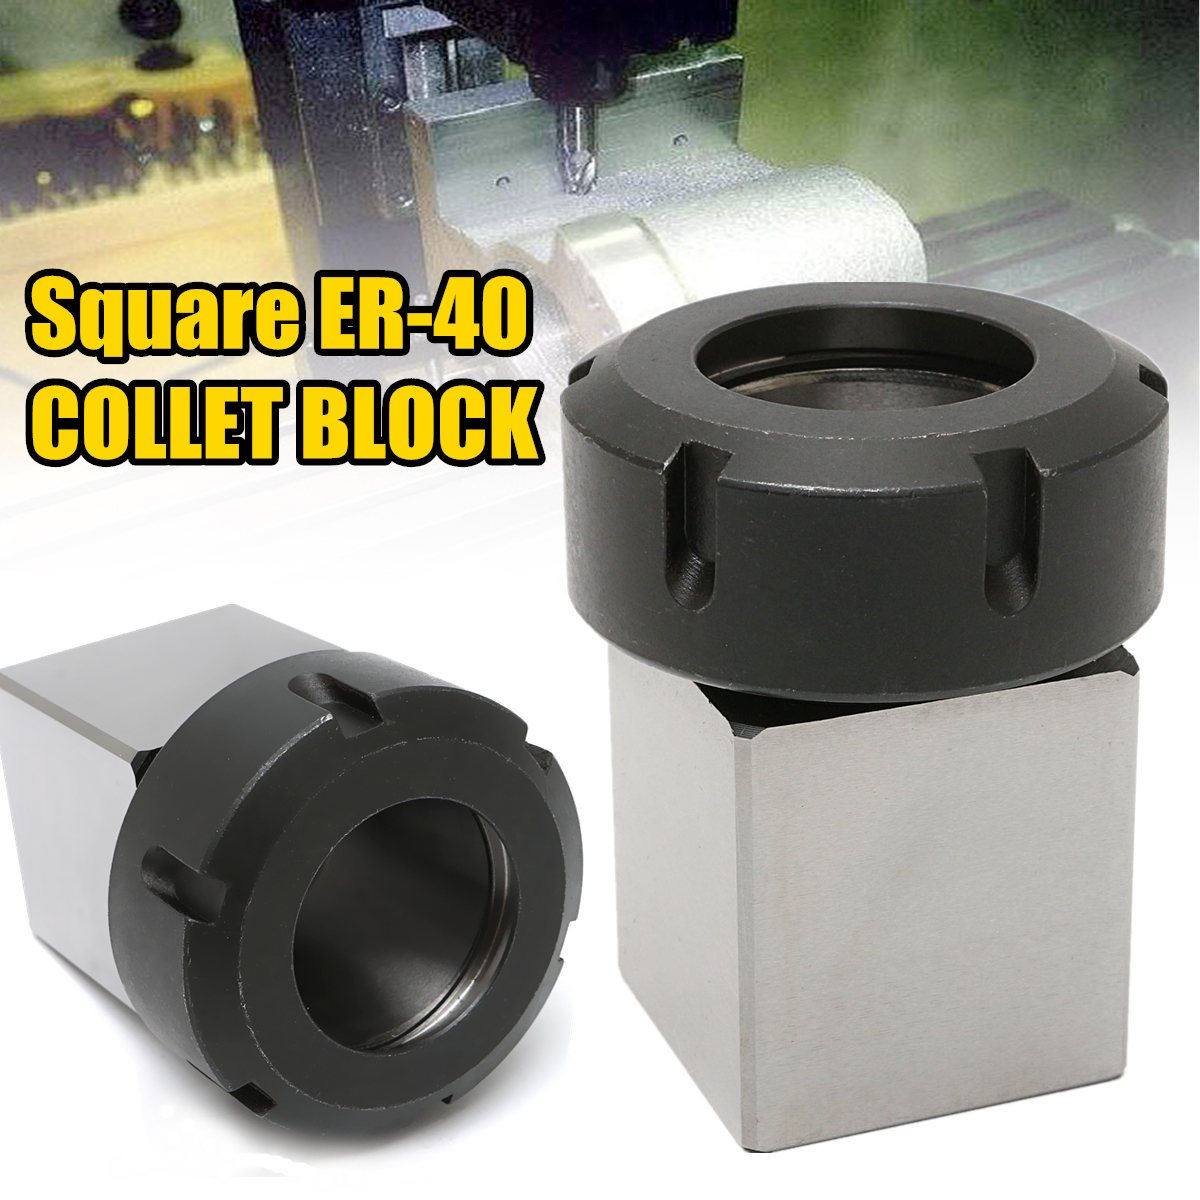 1pc New High Strength ER-40 3900-5125 Square Collet Chuck Block Holder For CNC Lathe Engraving Machine CNC Machines 1pc square er40 collet chuck block holder 3900 5125 for cnc lathe engraving machine cross hole drilling